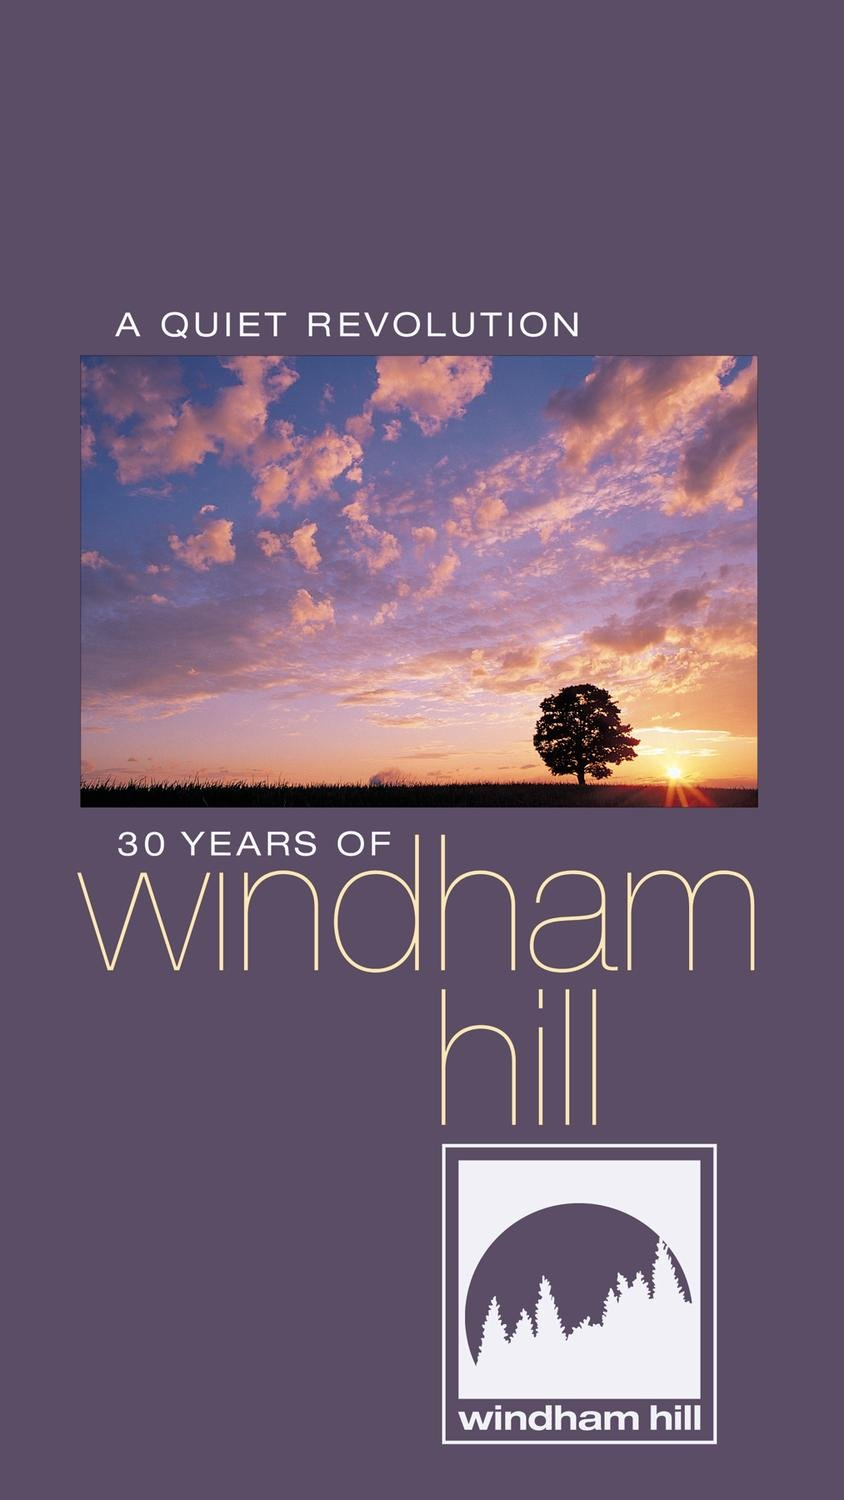 Quiet Revolution: 30 Years of Windham Hill                                                                                                                                                                                                                                                    <span class=